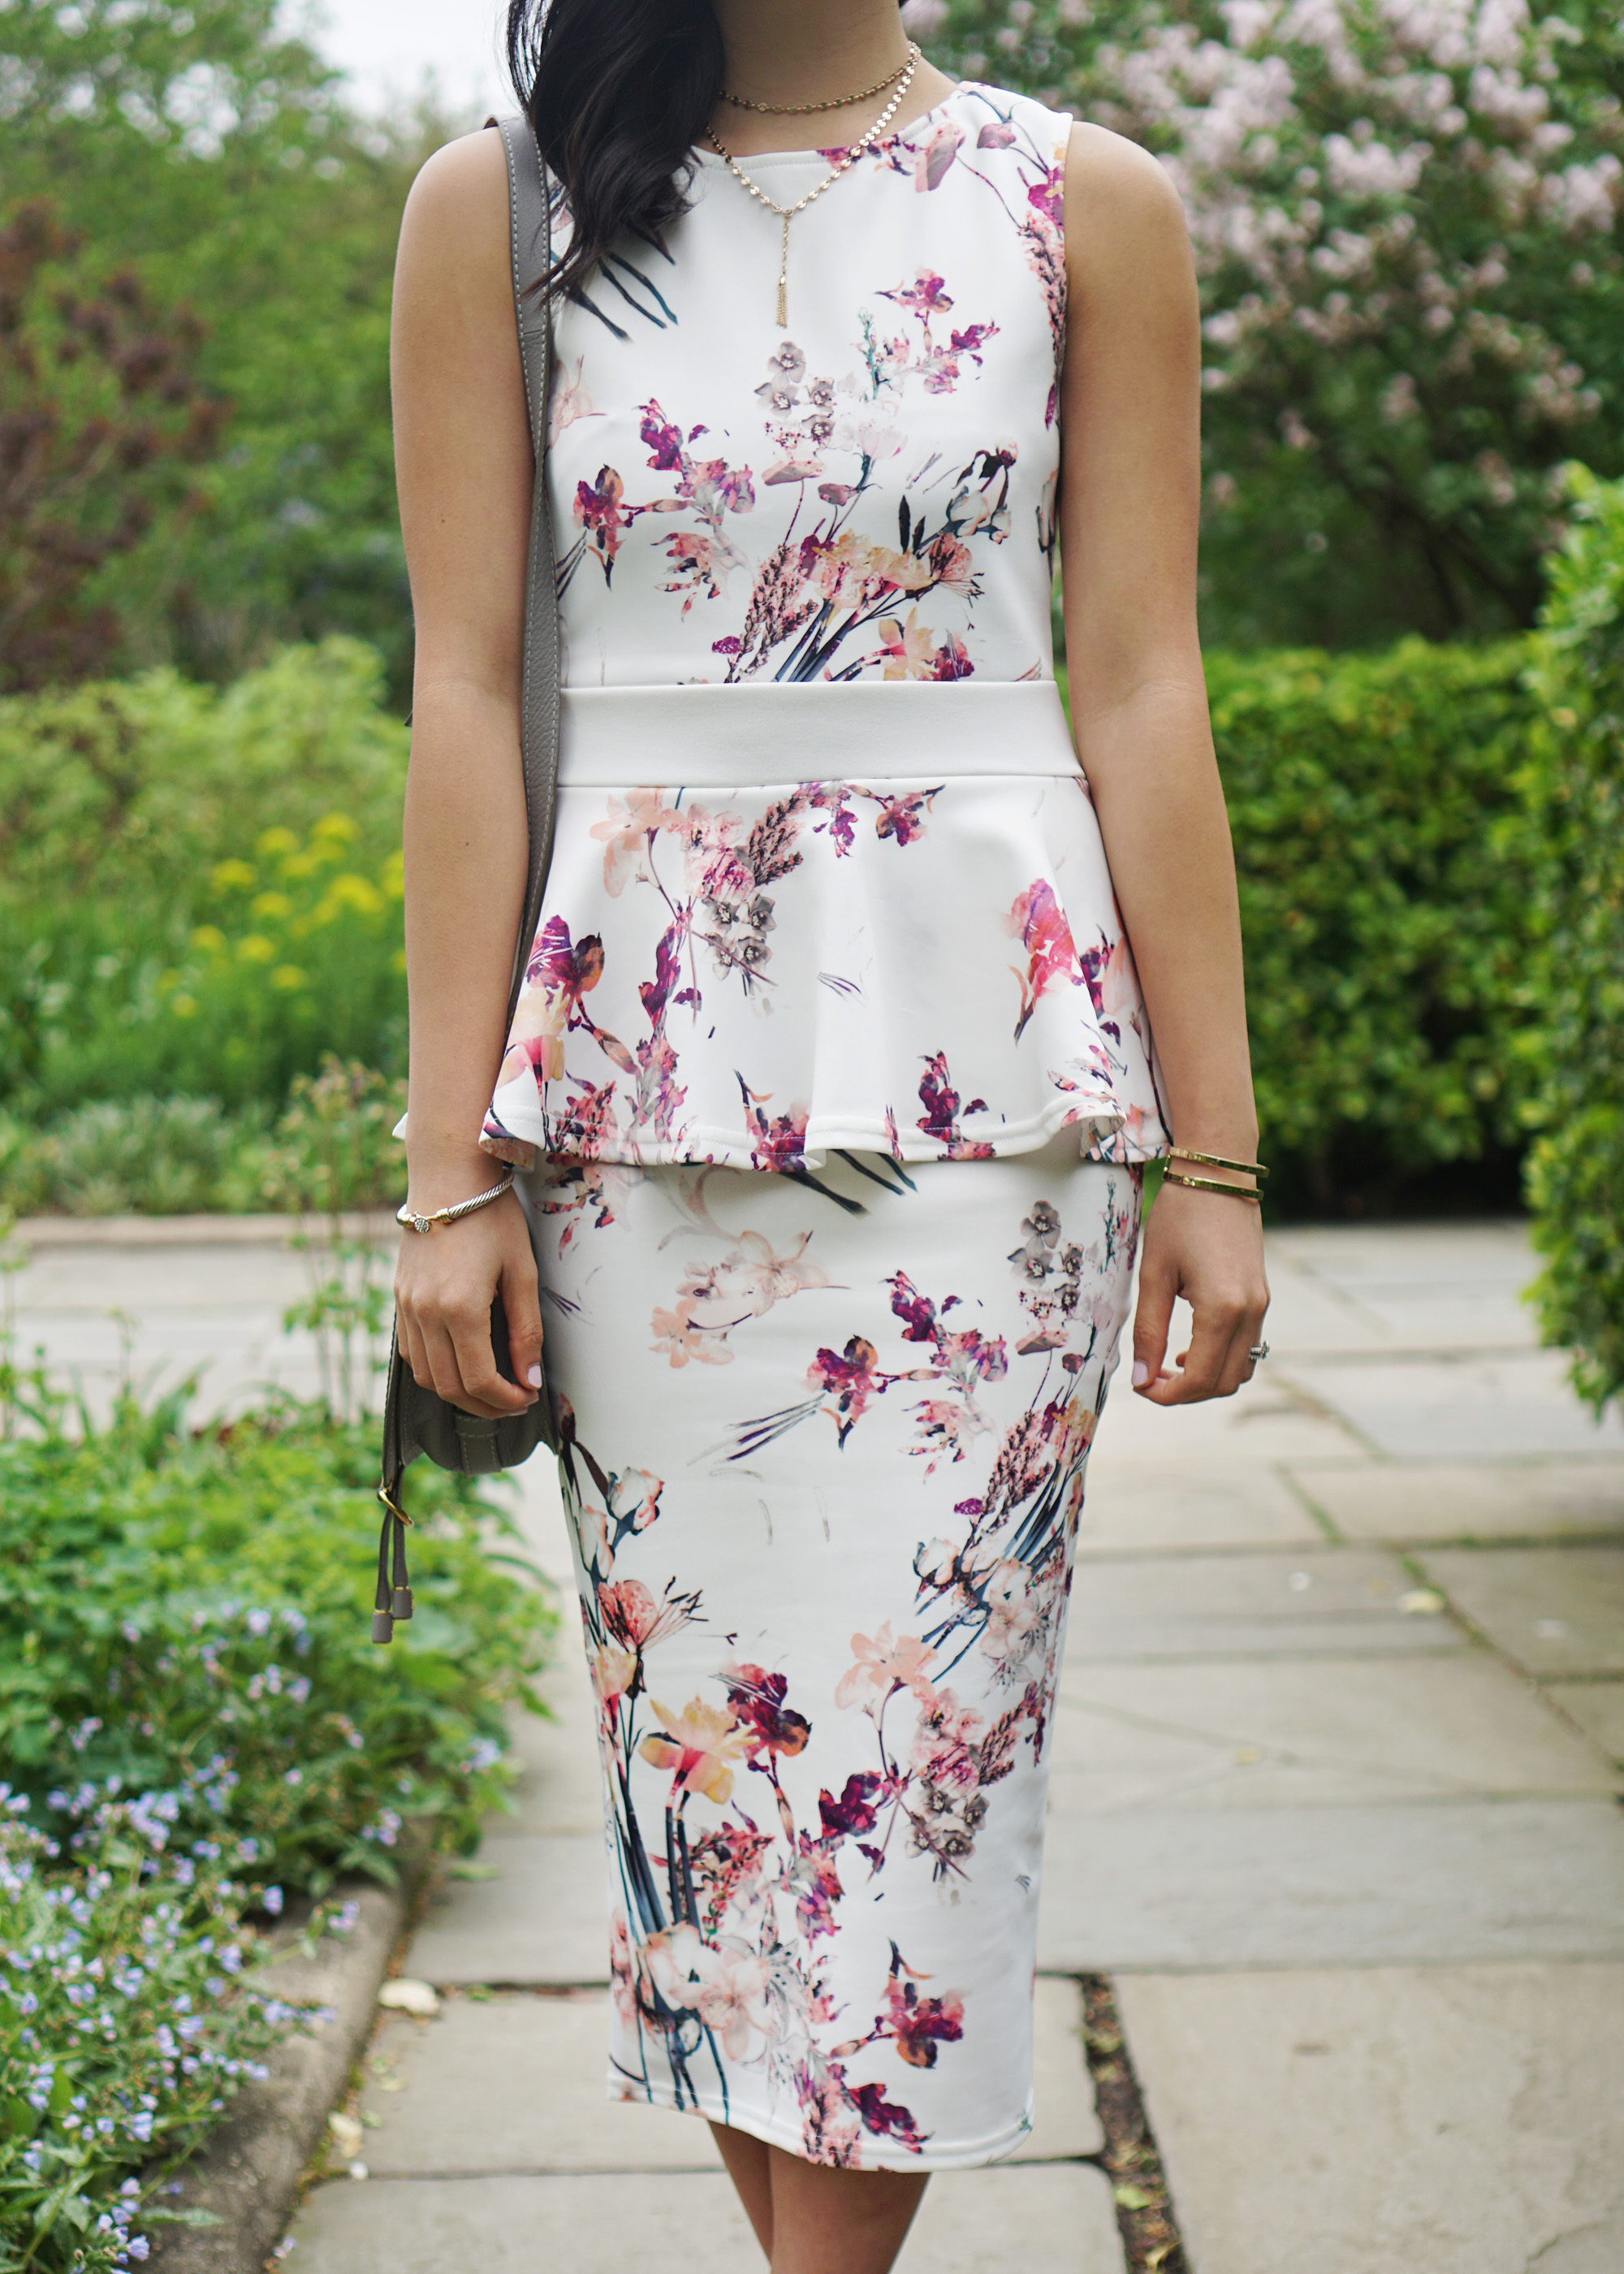 Garden party wedding guest skirt the rules life for Peplum dresses for wedding guest